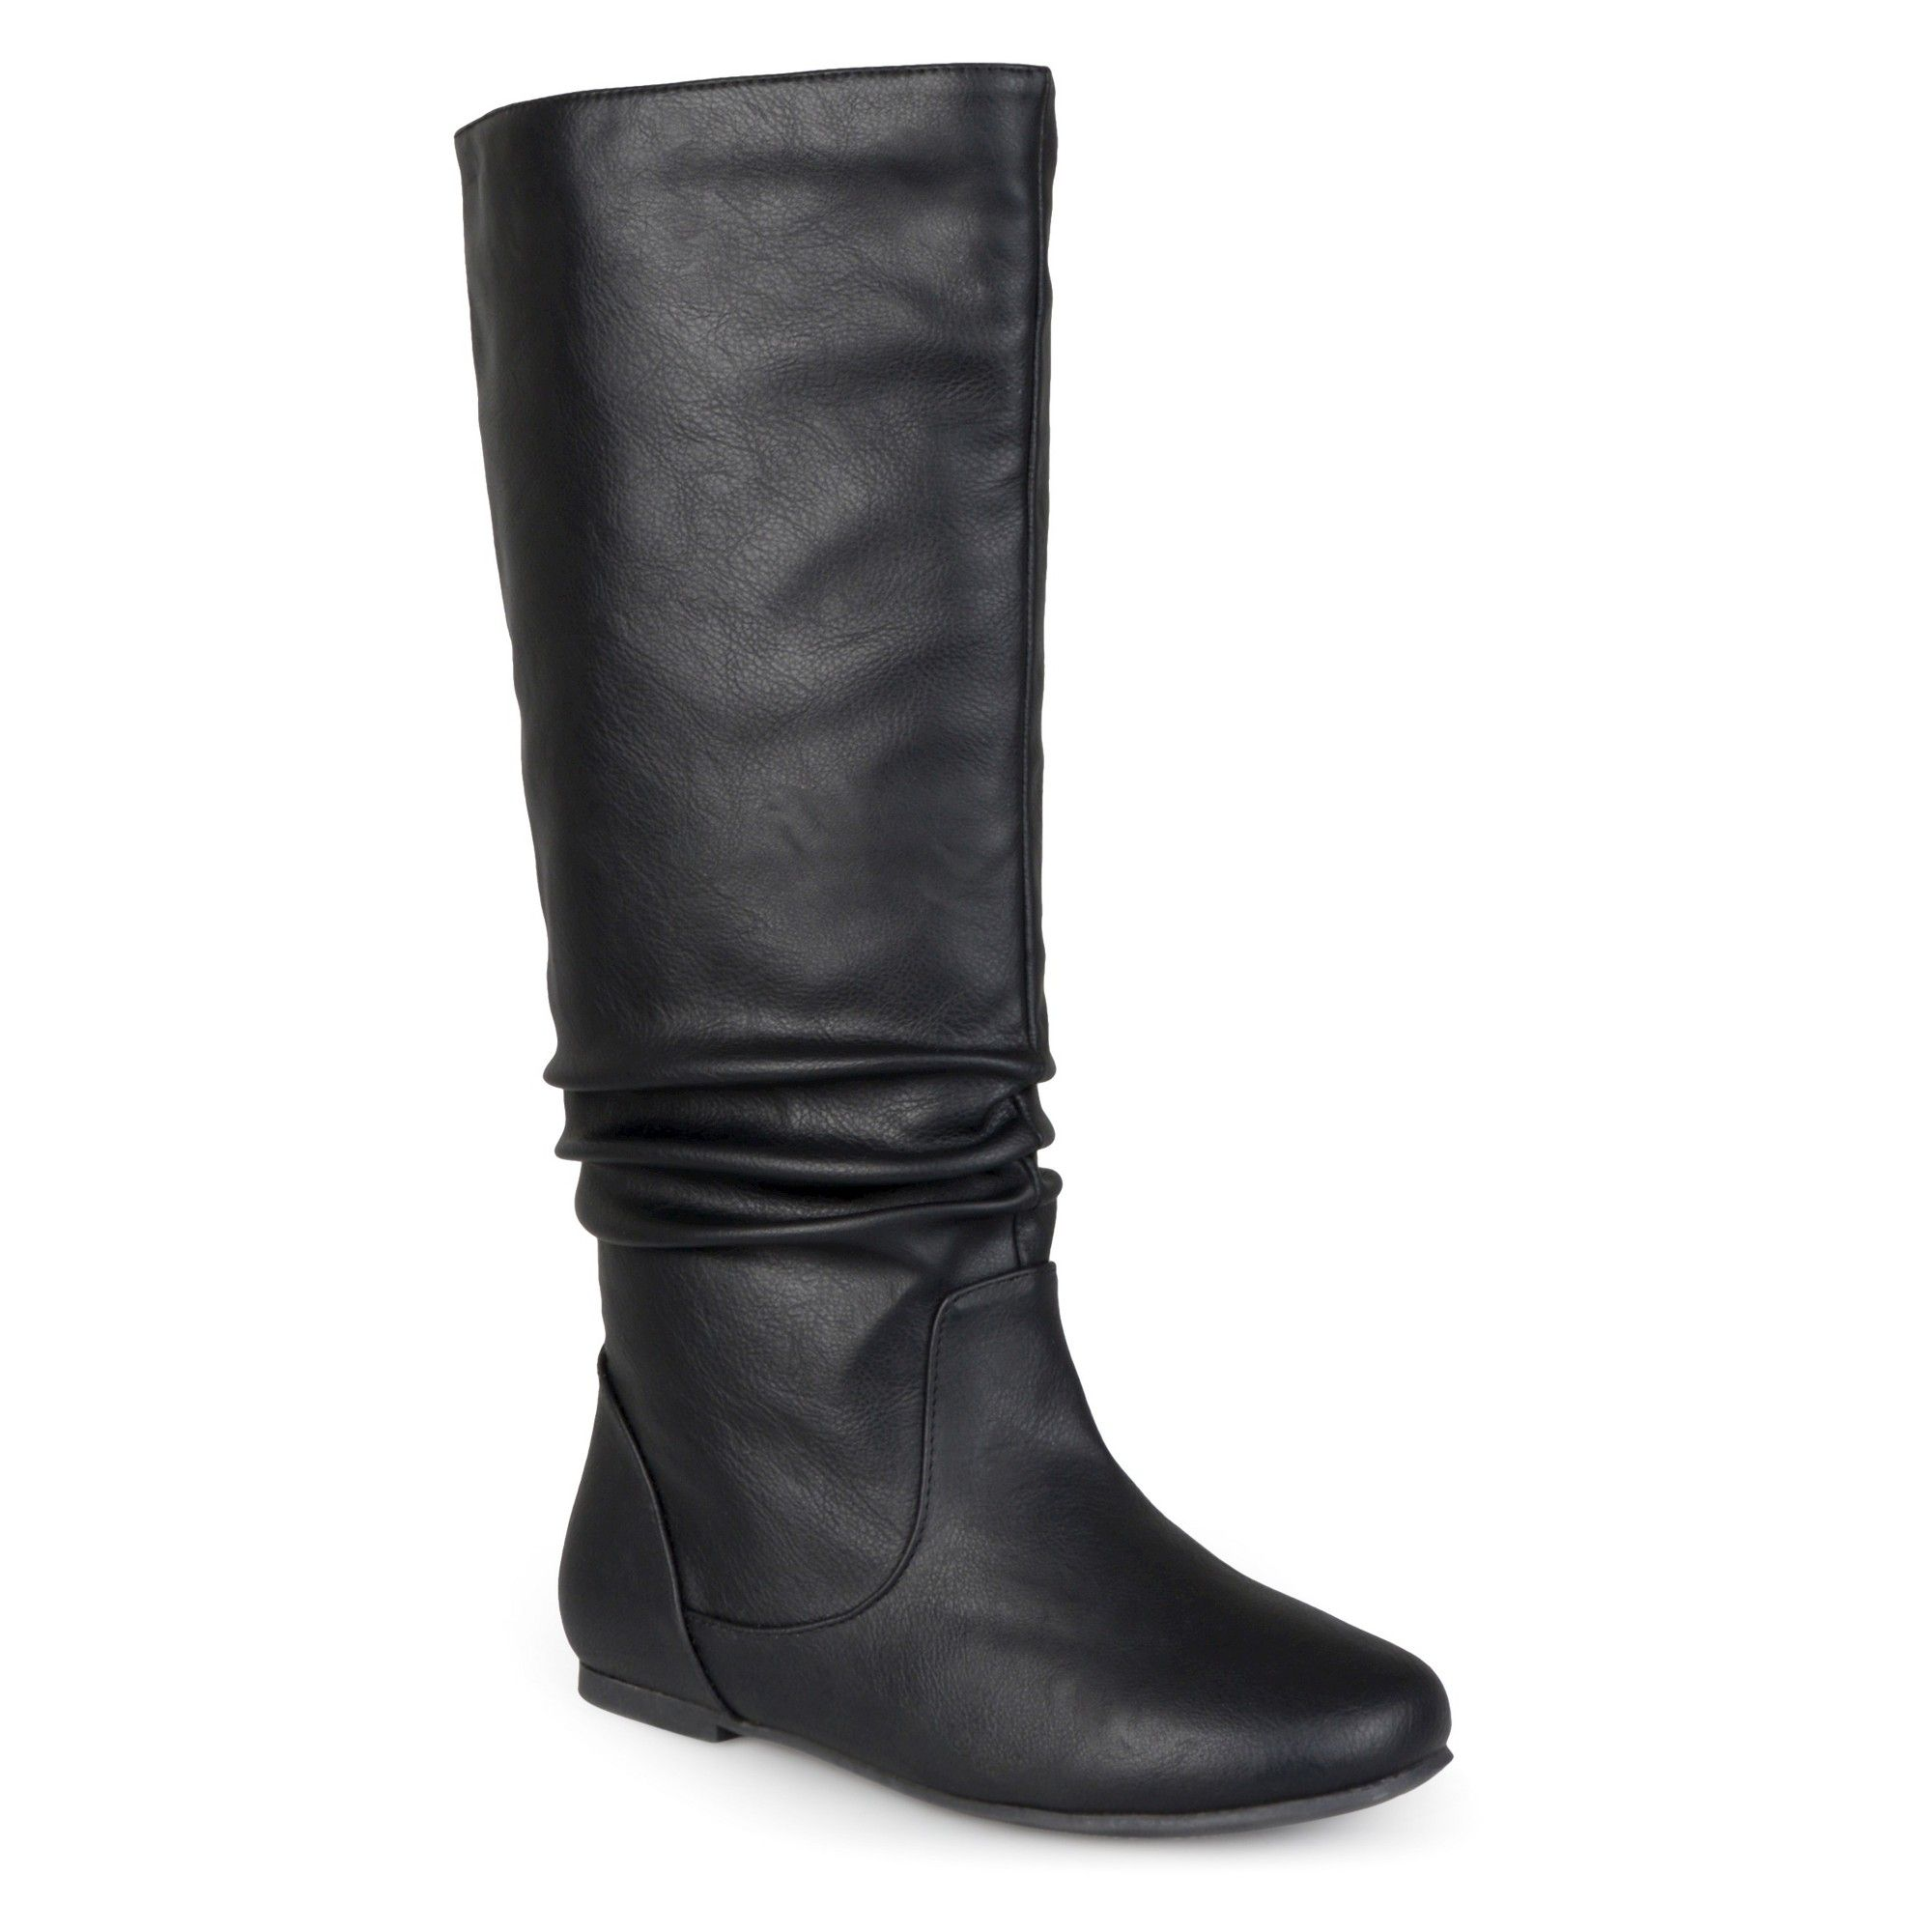 a15143b3d89 Women s Journee Collection Extra Wide Calf Mid-Calf Slouch Riding Boots -  Black 7.5 Extra Wide Calf